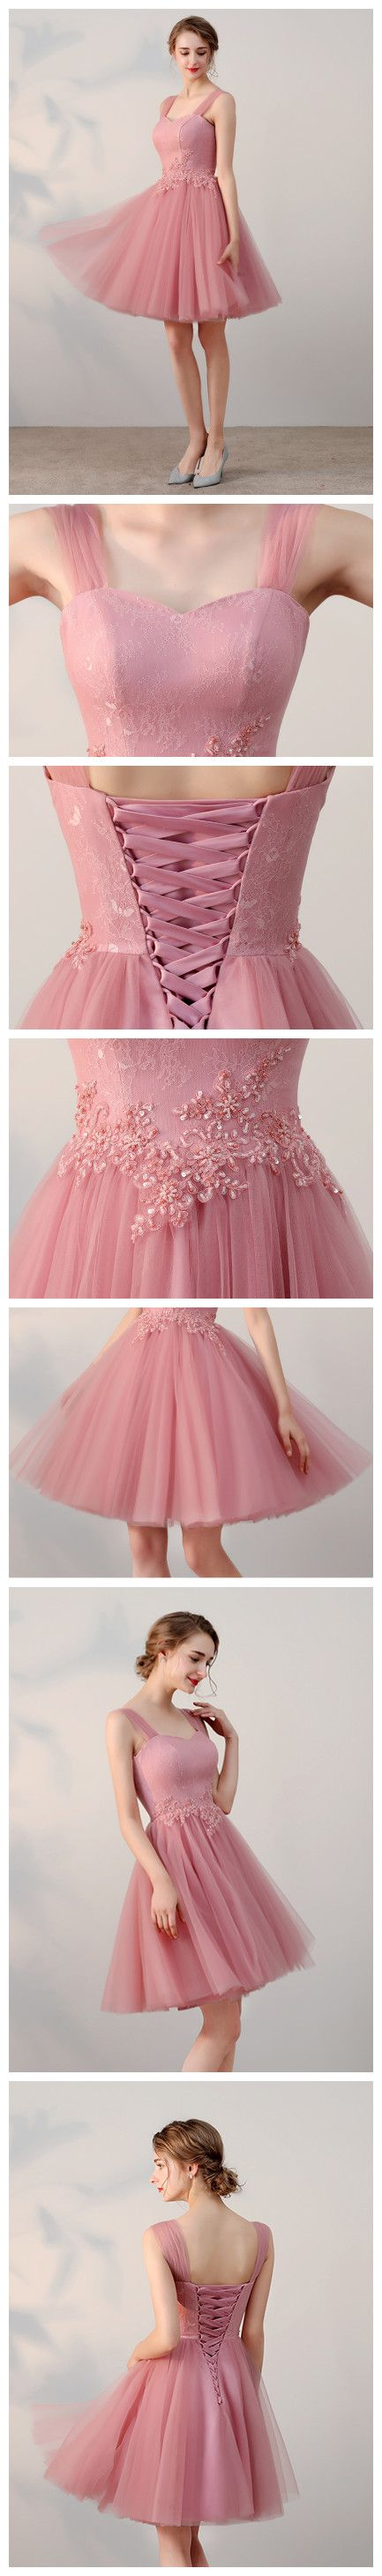 Chic aline tulle straps short prom dress pink simple lace applique